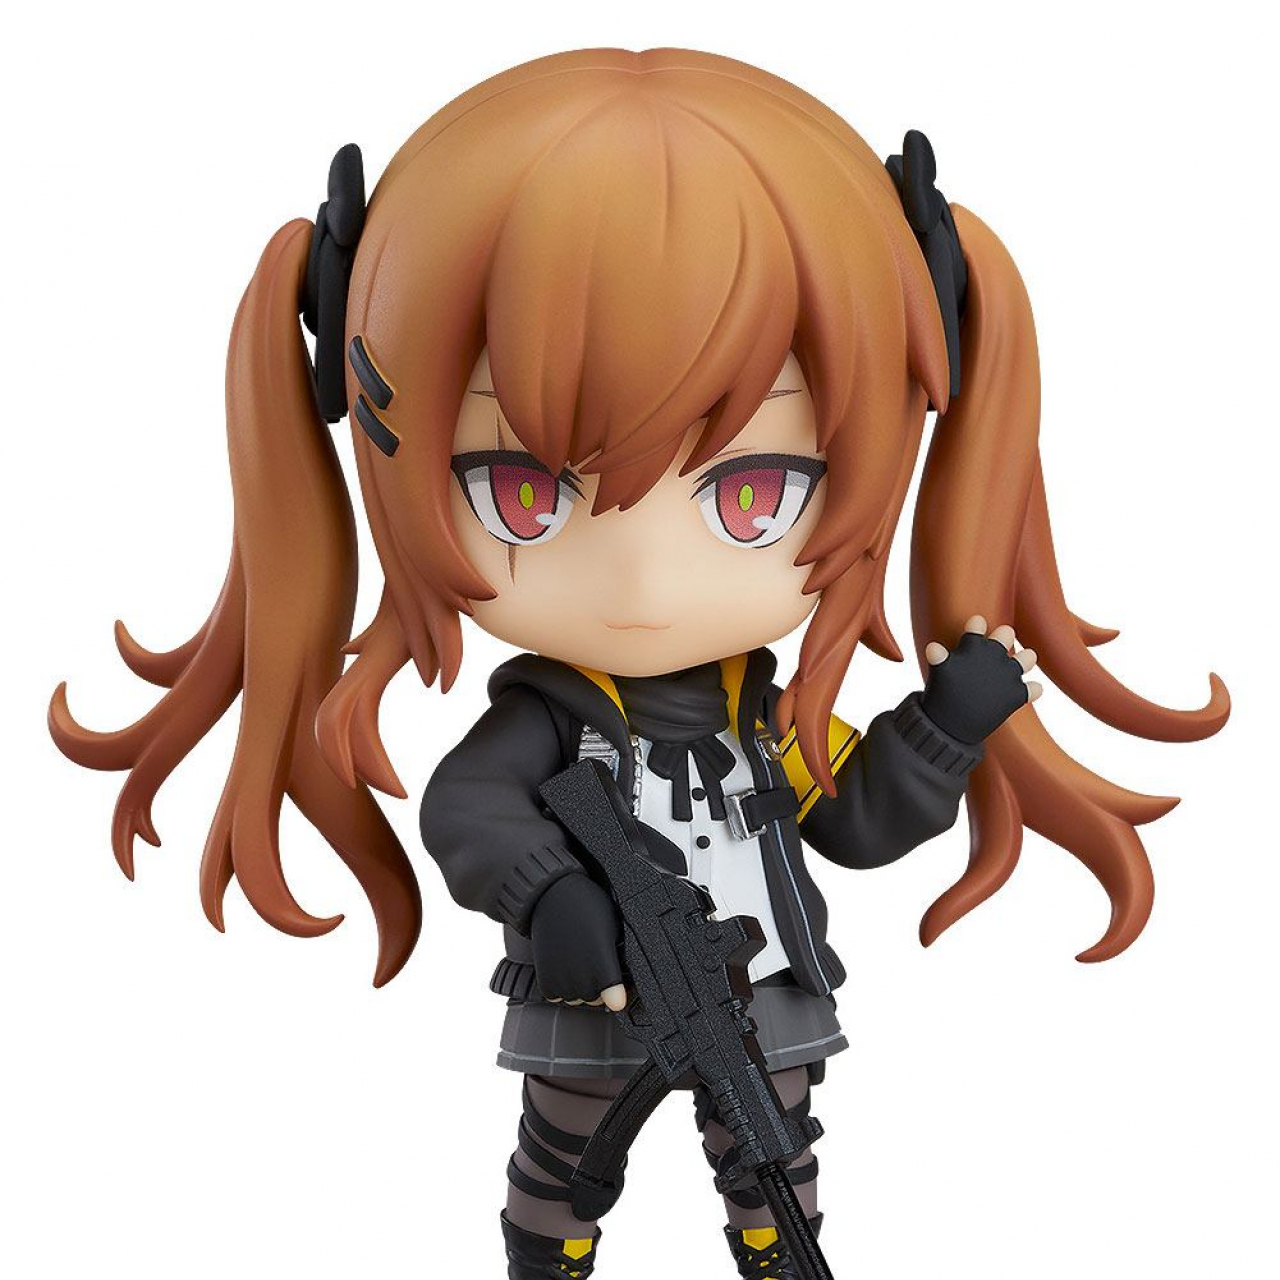 Girls Frontline Nendoroid Action Figure UMP9 10 cm